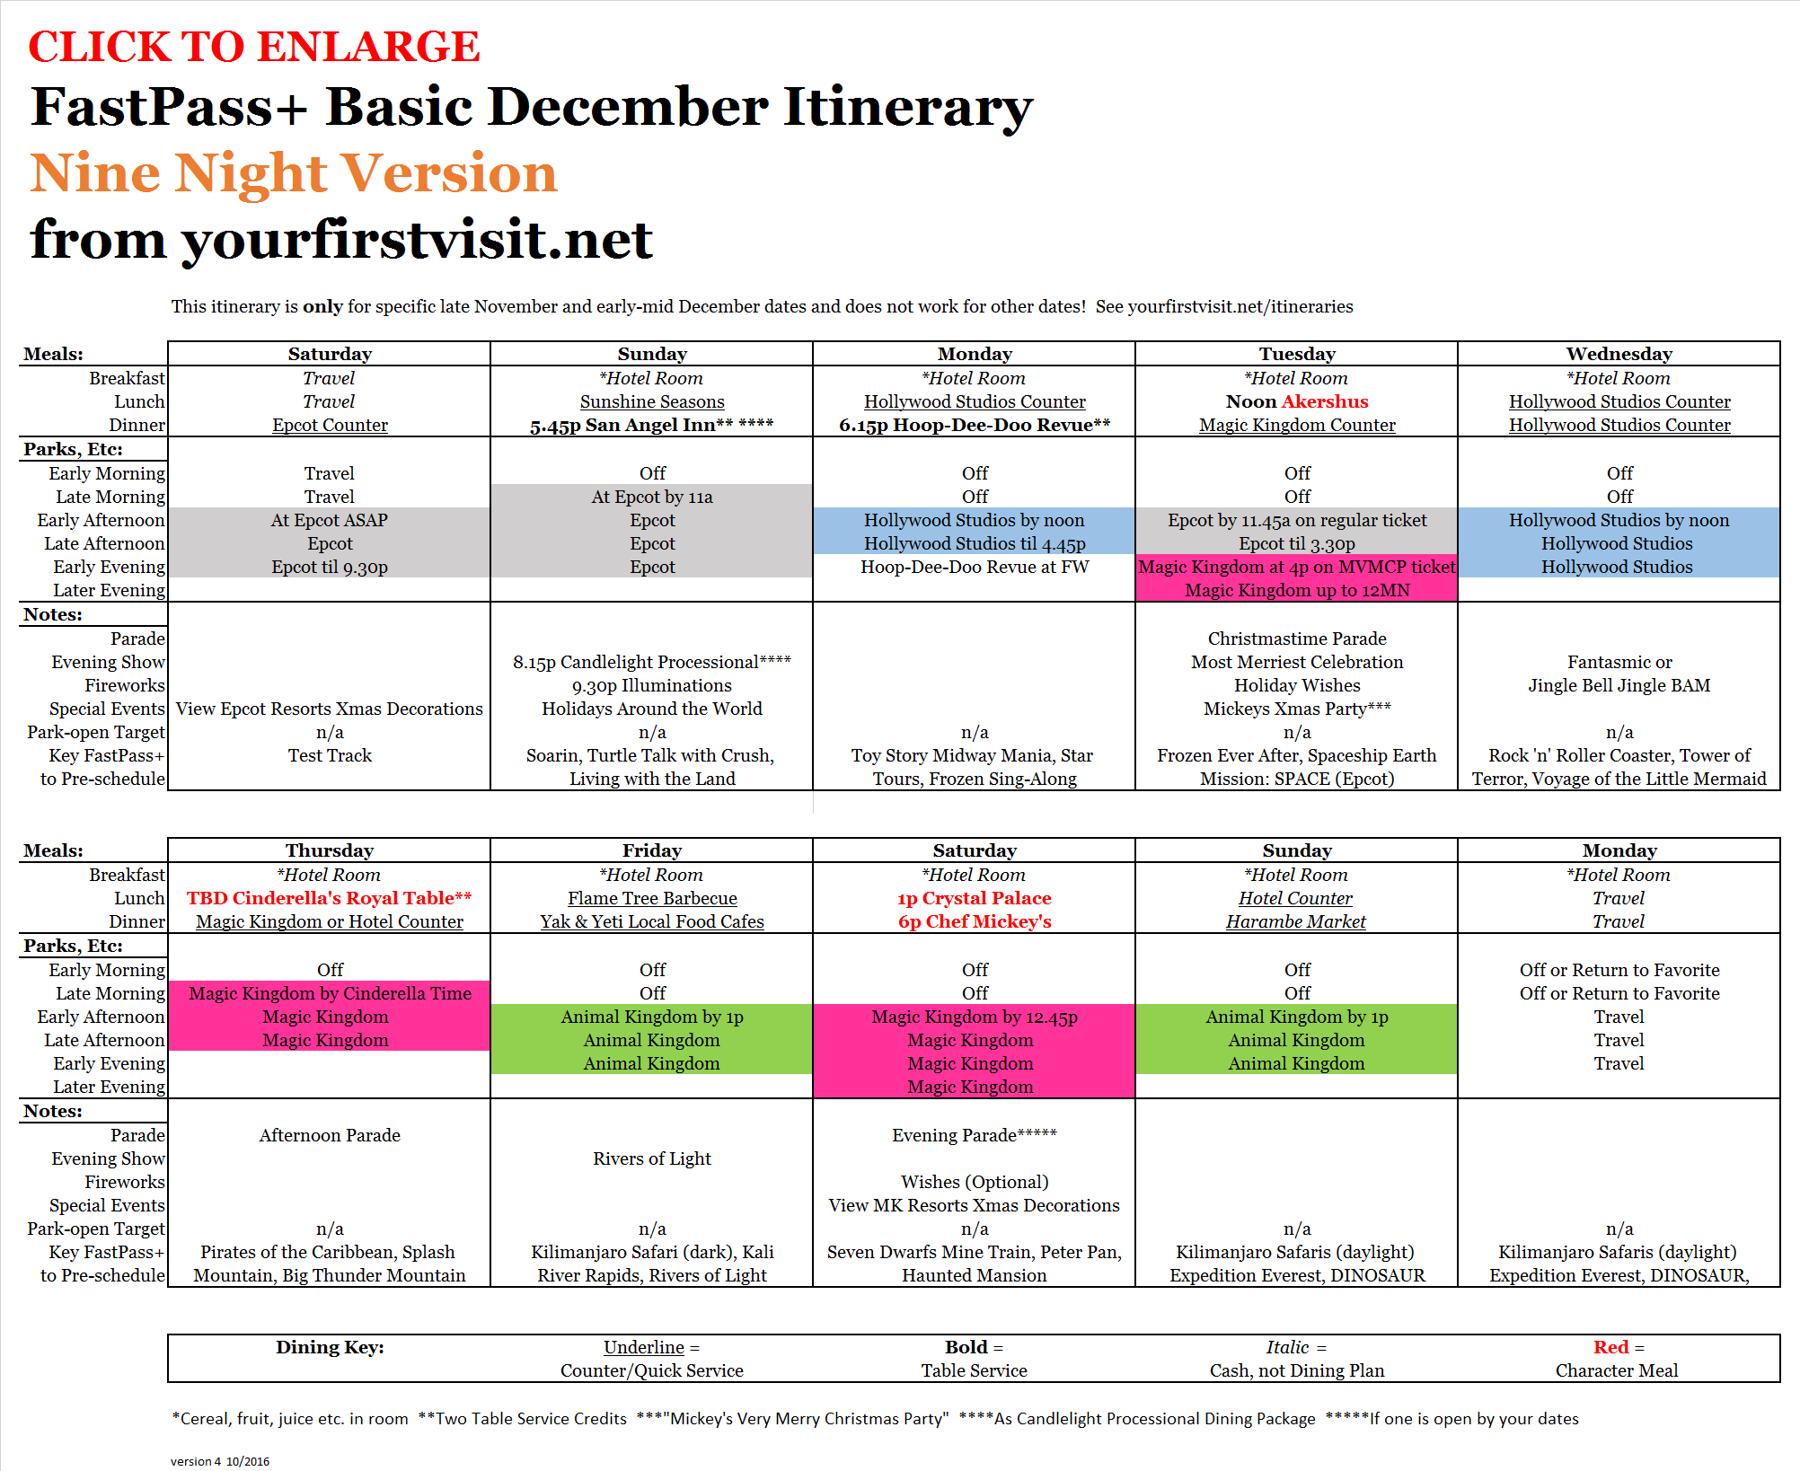 nine-night-variant-december-itinerary-from-yourfirstvisit-net-oct